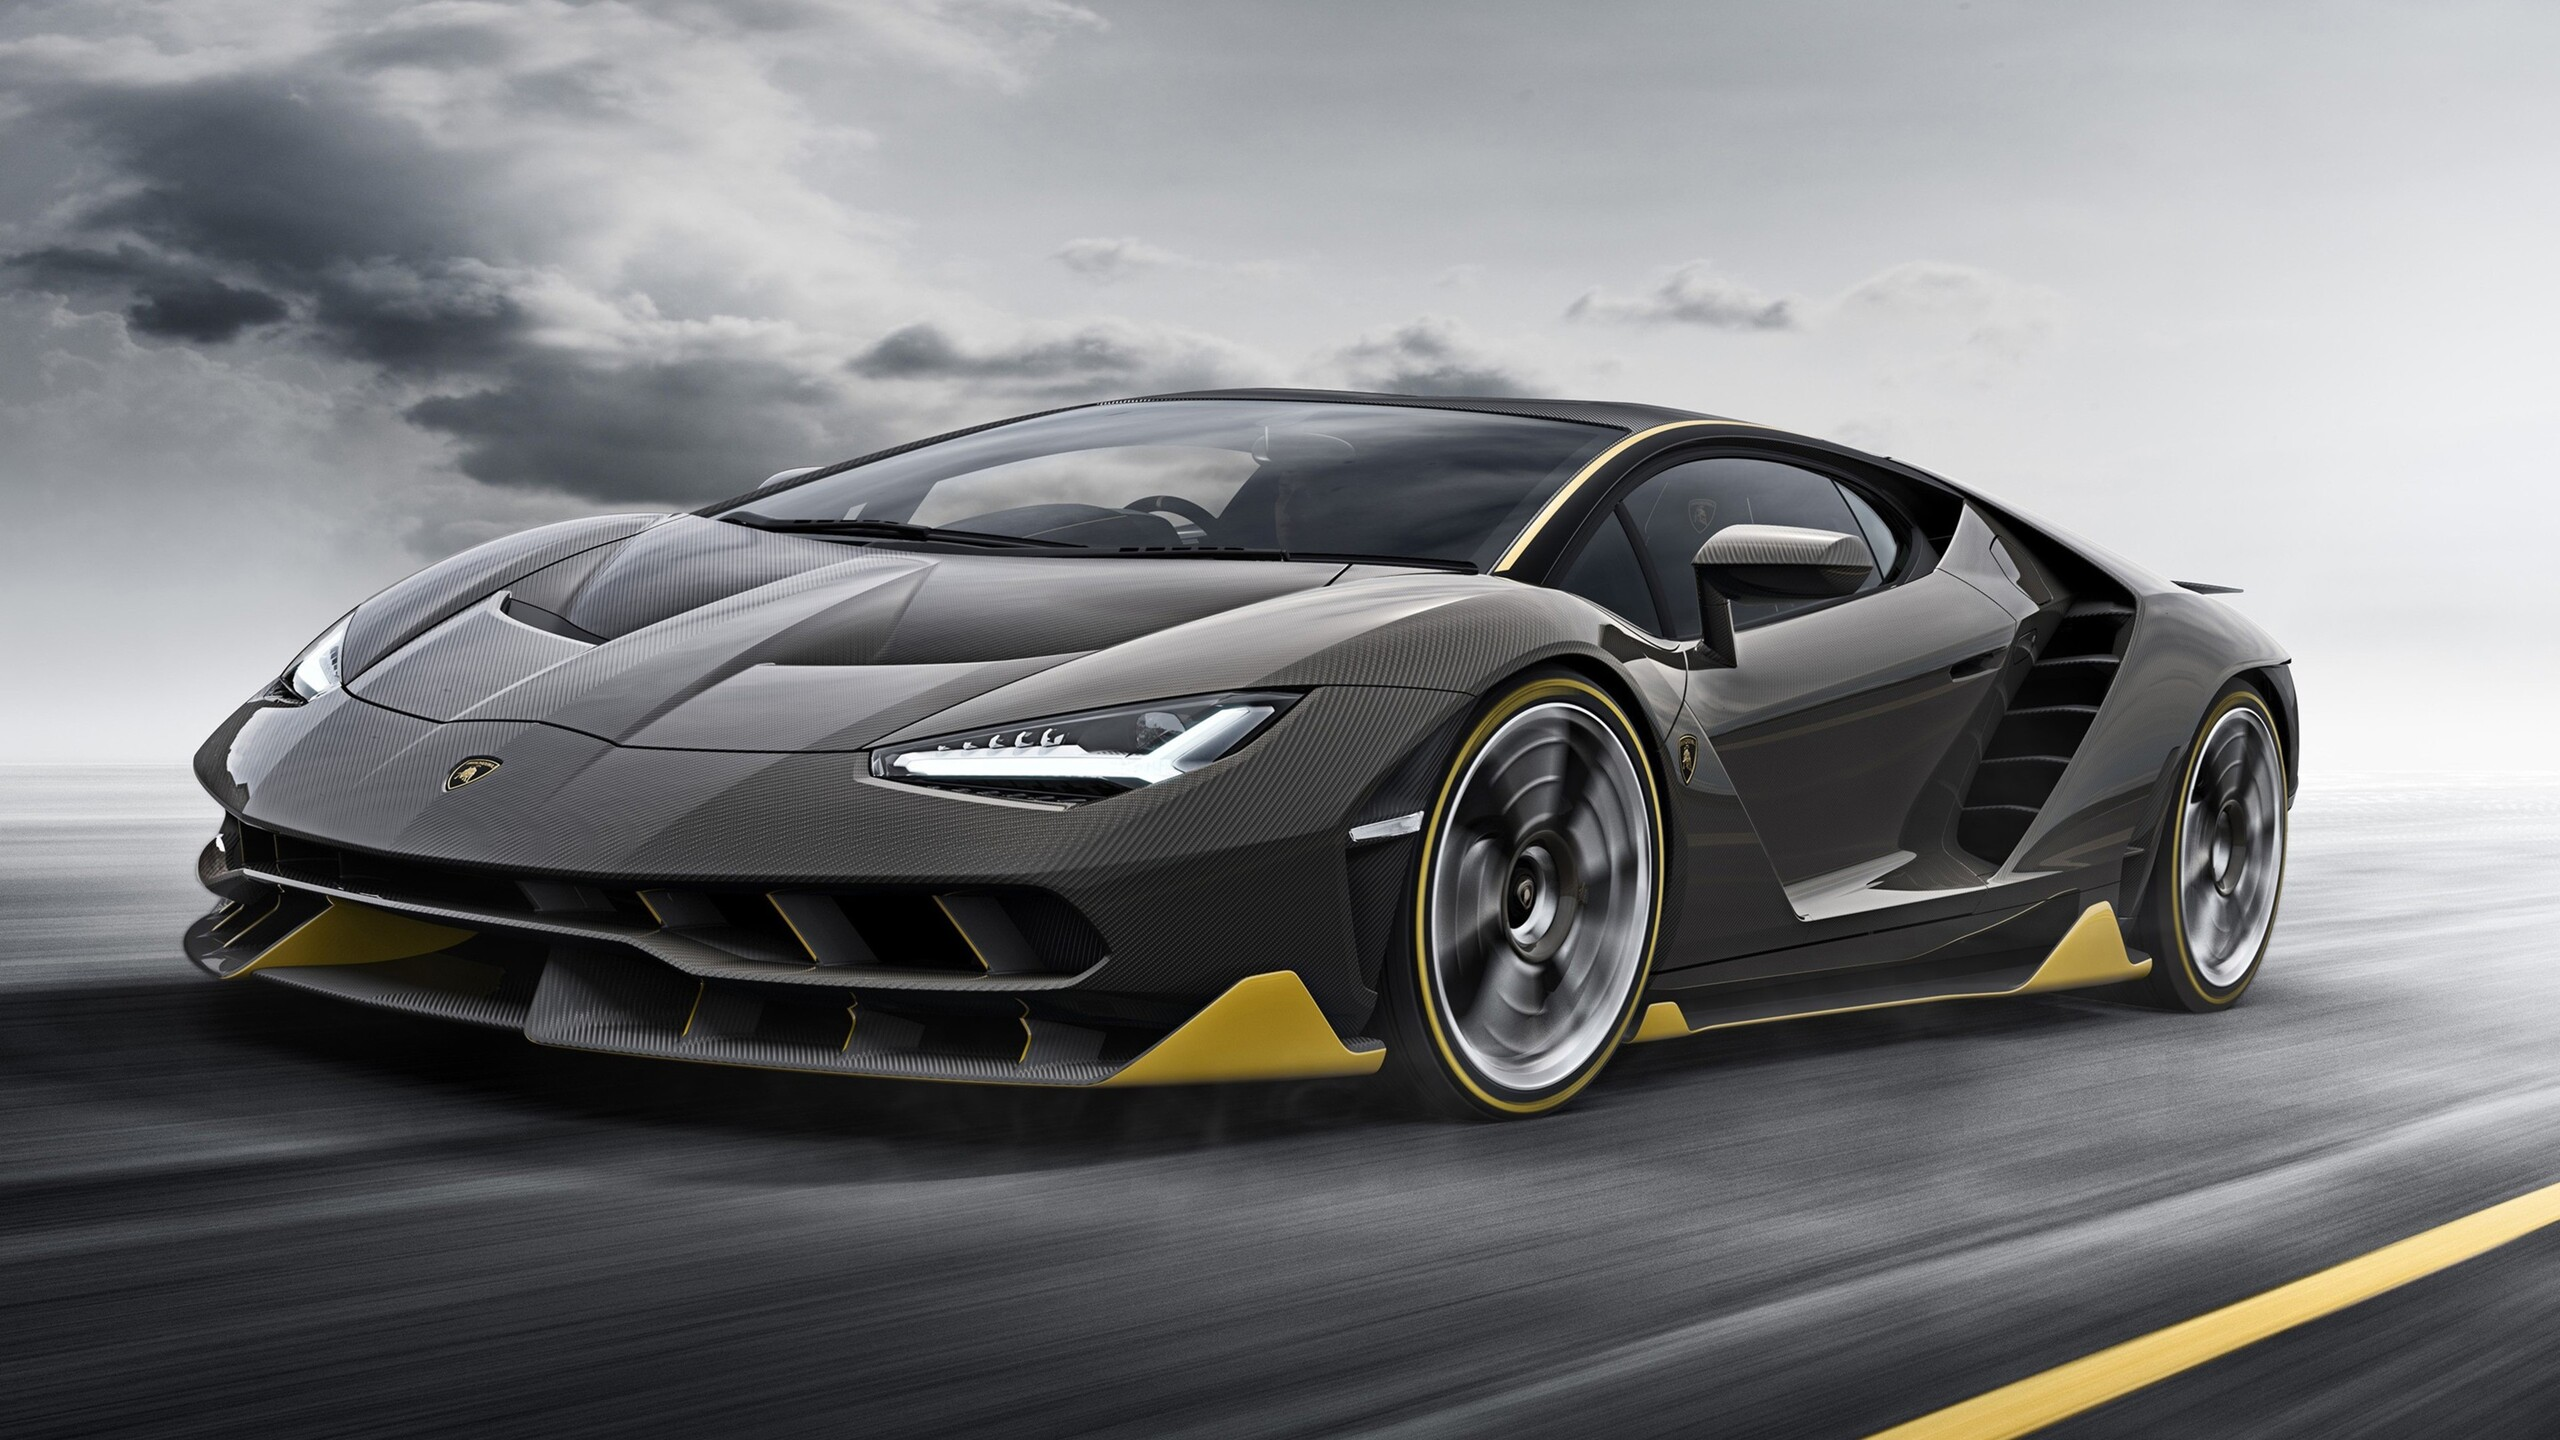 2560x1440 Lamborghini Centenario Super Car 1440p Resolution Hd 4k